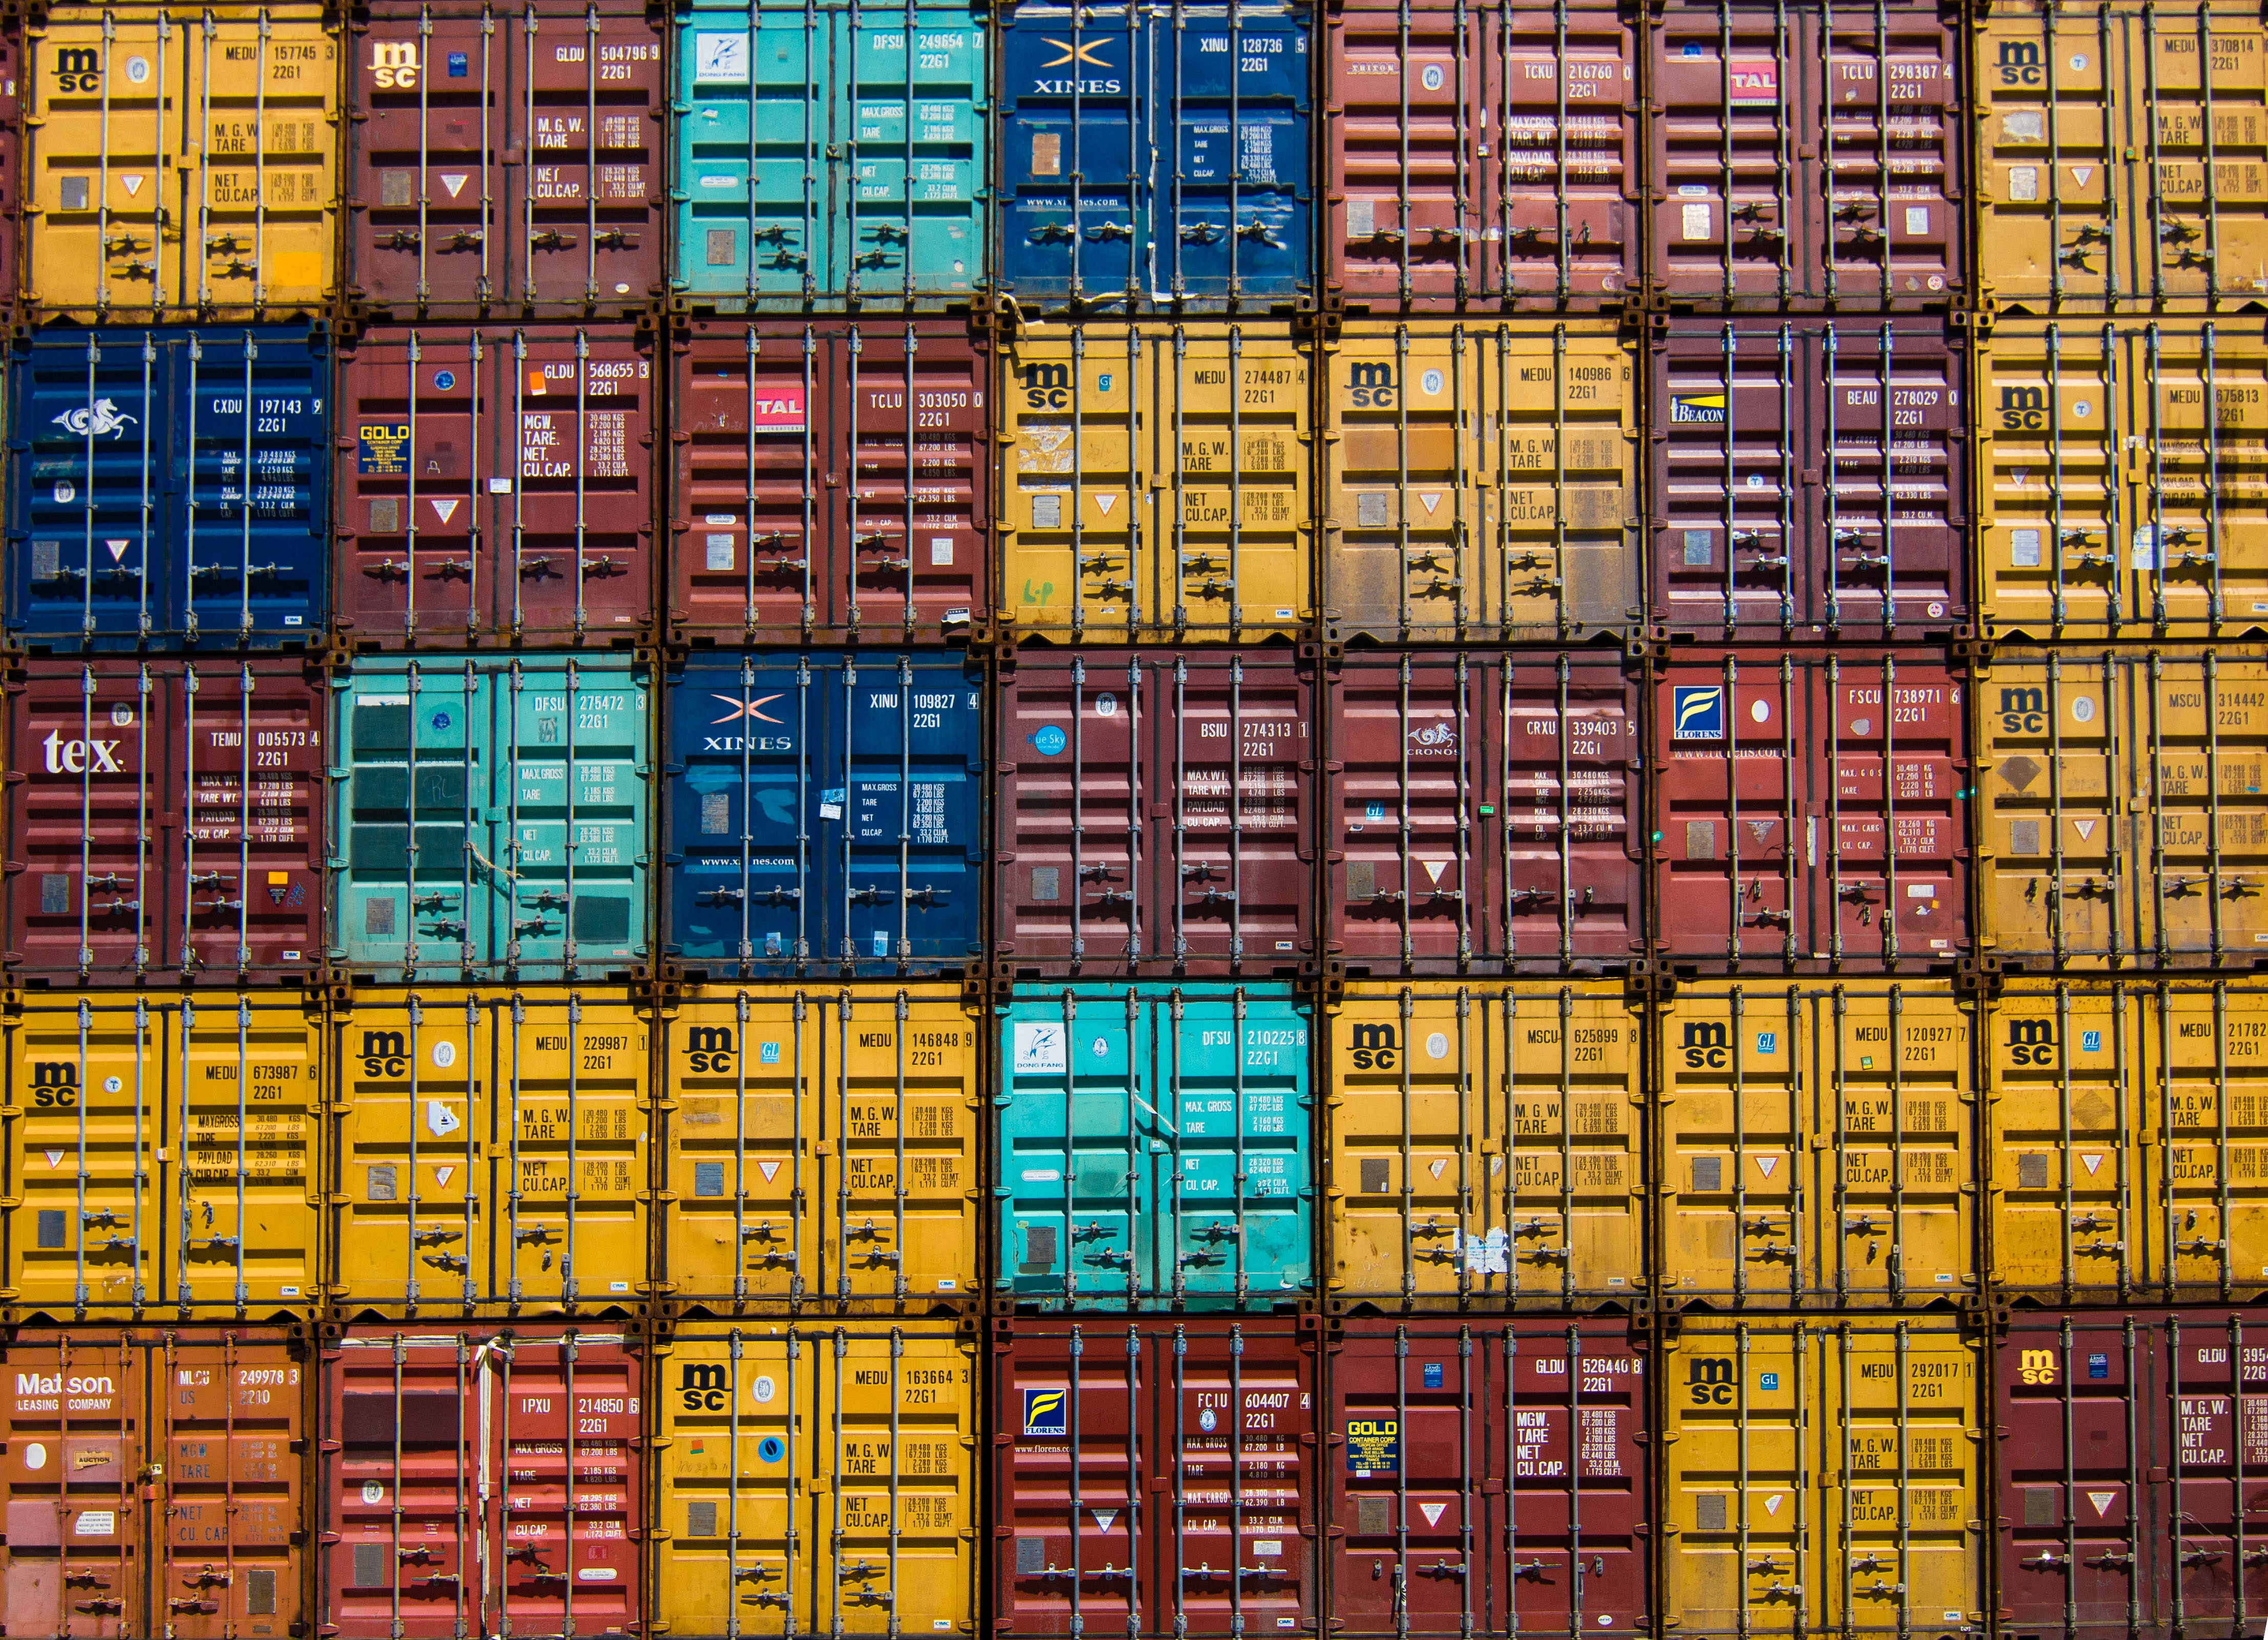 A stack of shipping containers forming a colorful pattern